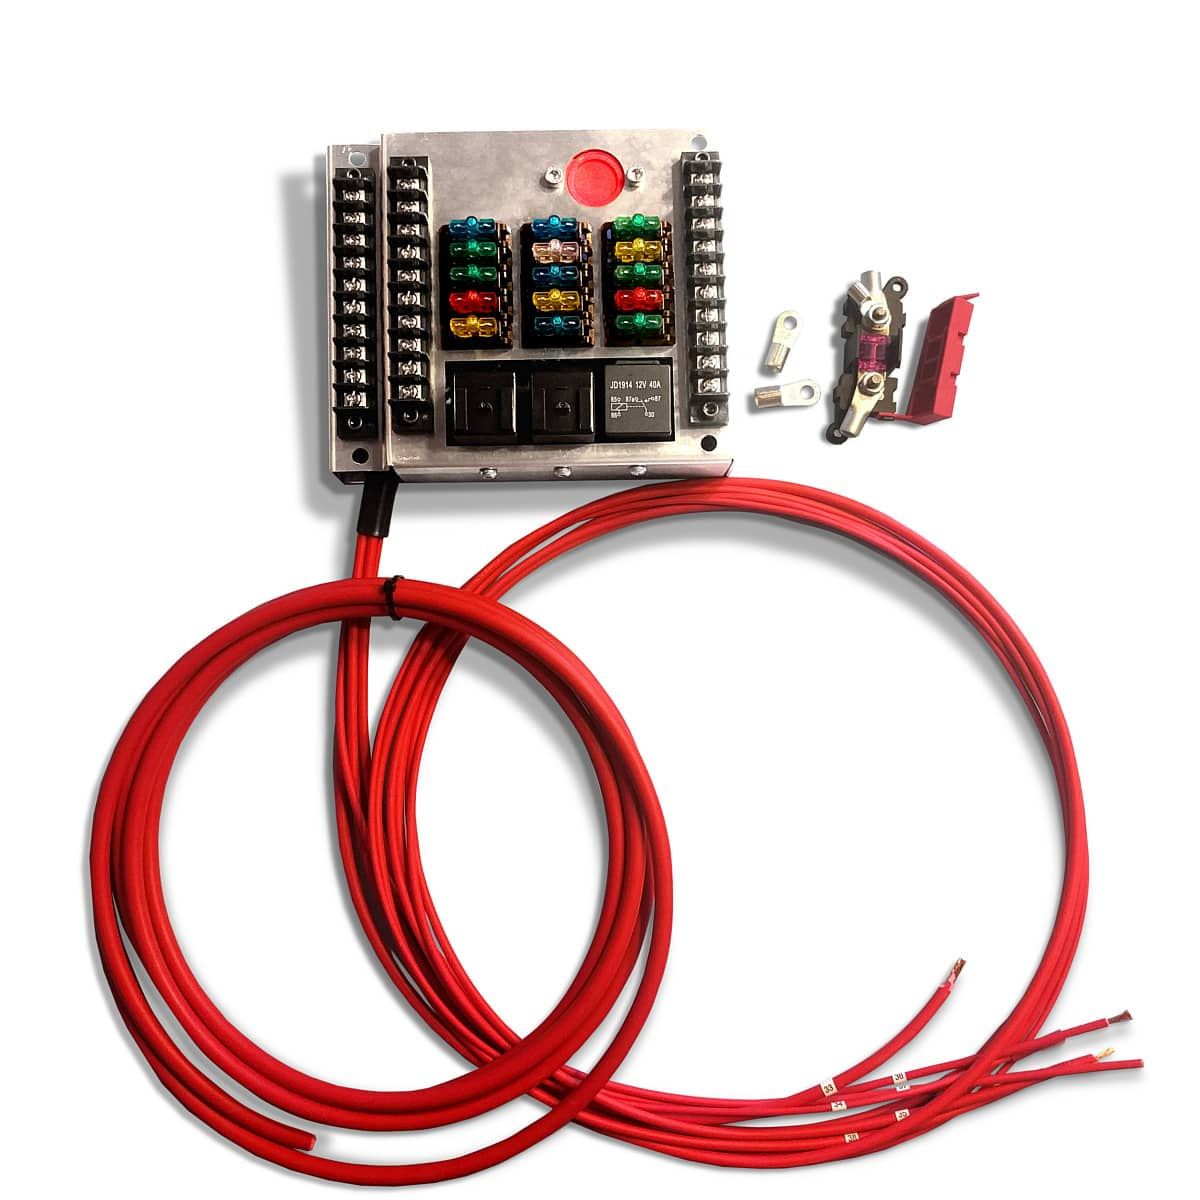 hight resolution of 12 volt universal fuse box with 15 fuses mgi speedware 15 circuit wiring harness diy